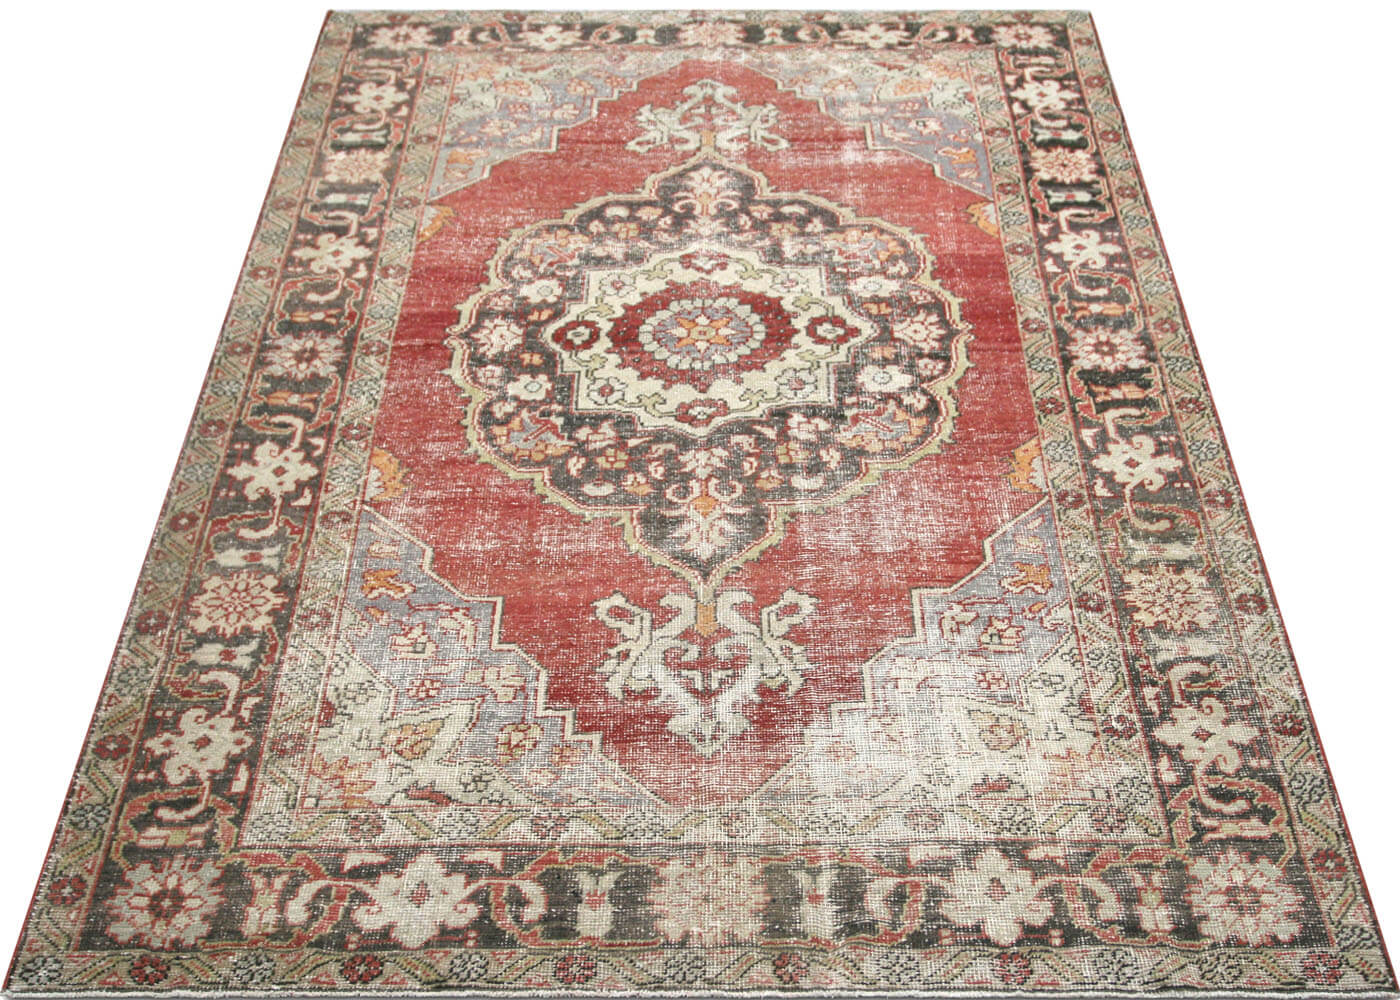 Vintage Turkish Oushak Carpet - 7' x 10'3""